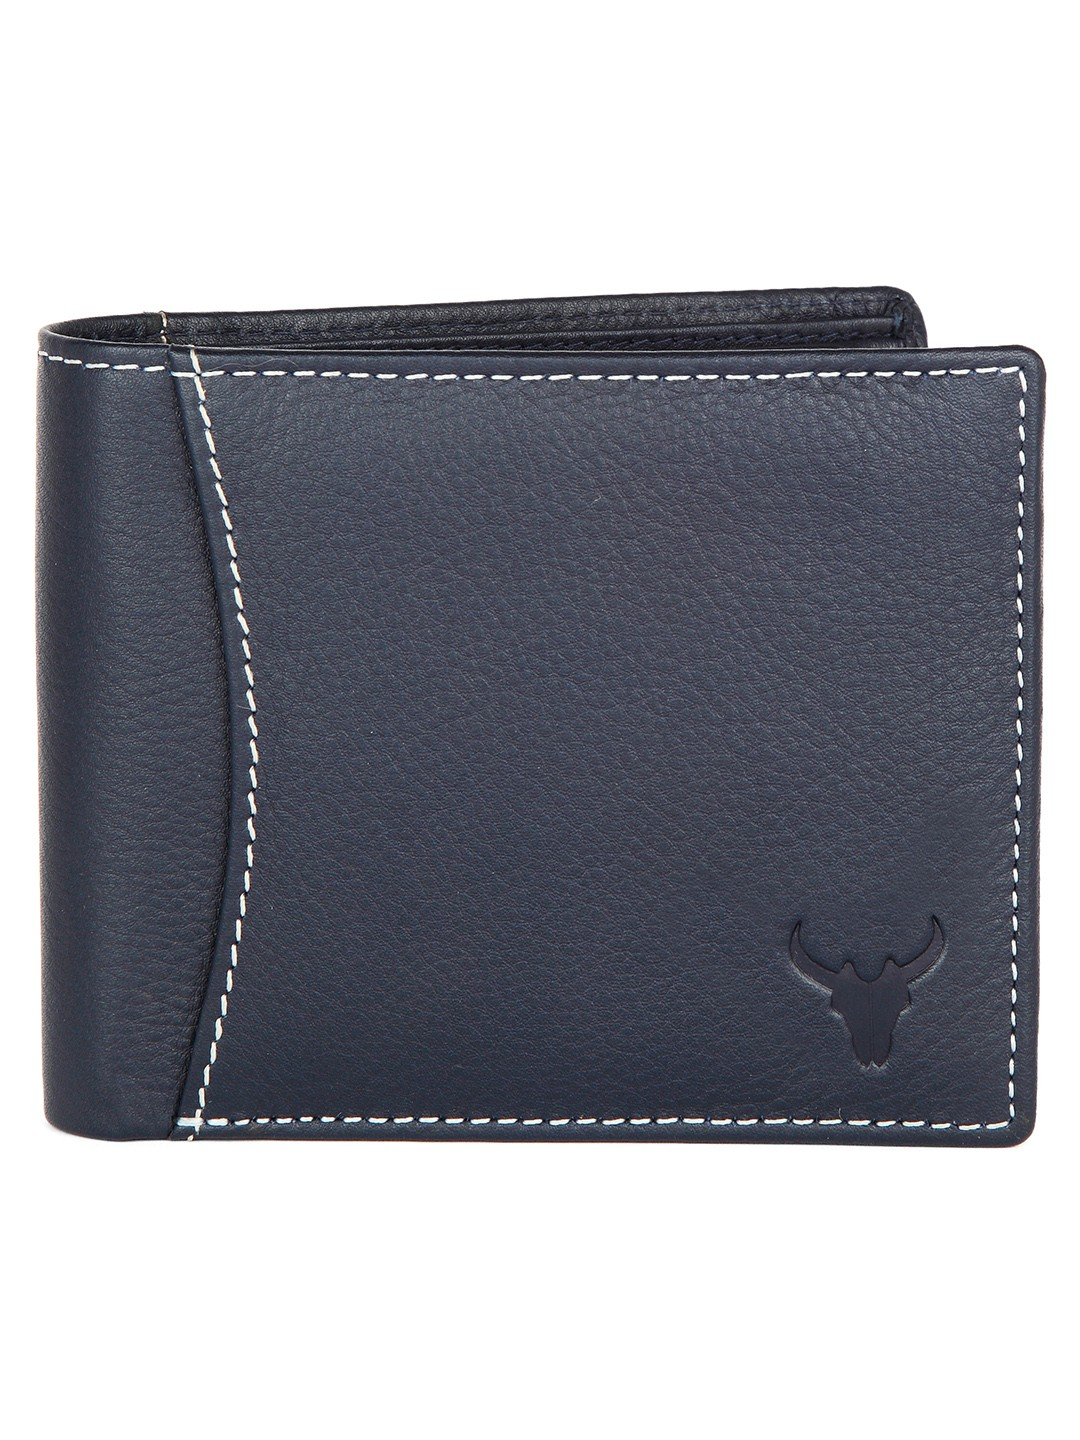 Napa Hide | Napa Hide RFID Protected Genuine High Quality Blue Leather Wallet For Men